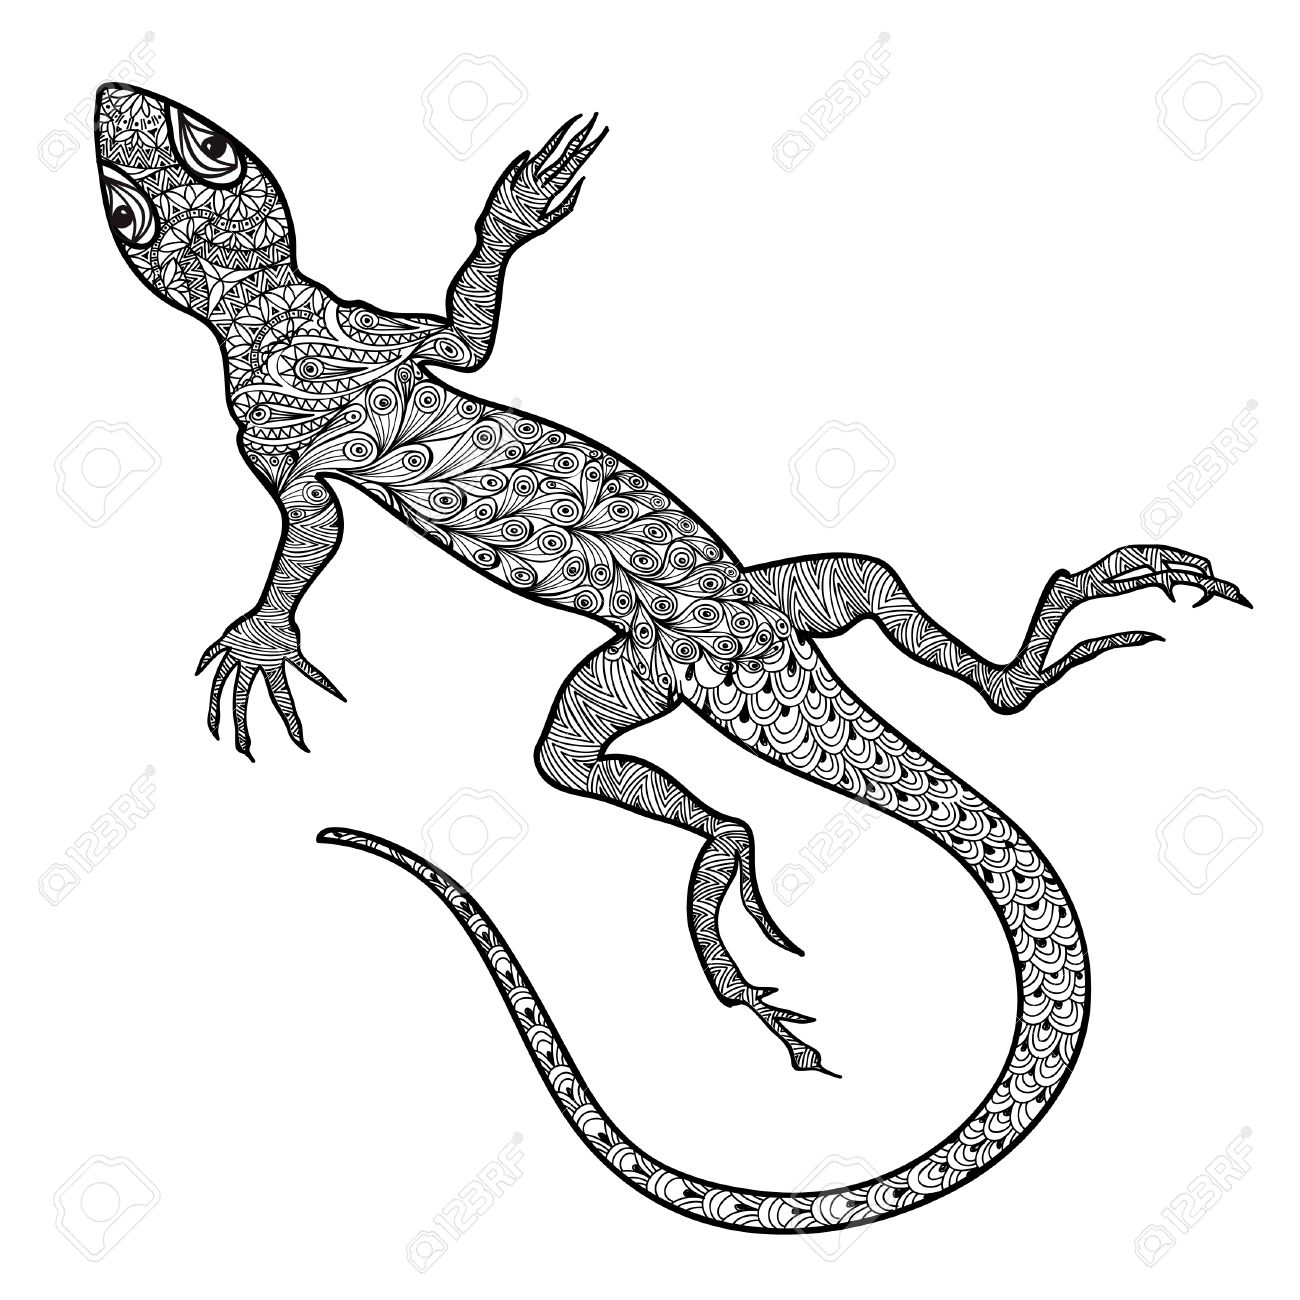 1300x1300 Lizard Isolated. Hand Drawn Vector Salamander With Ethnic Tribal